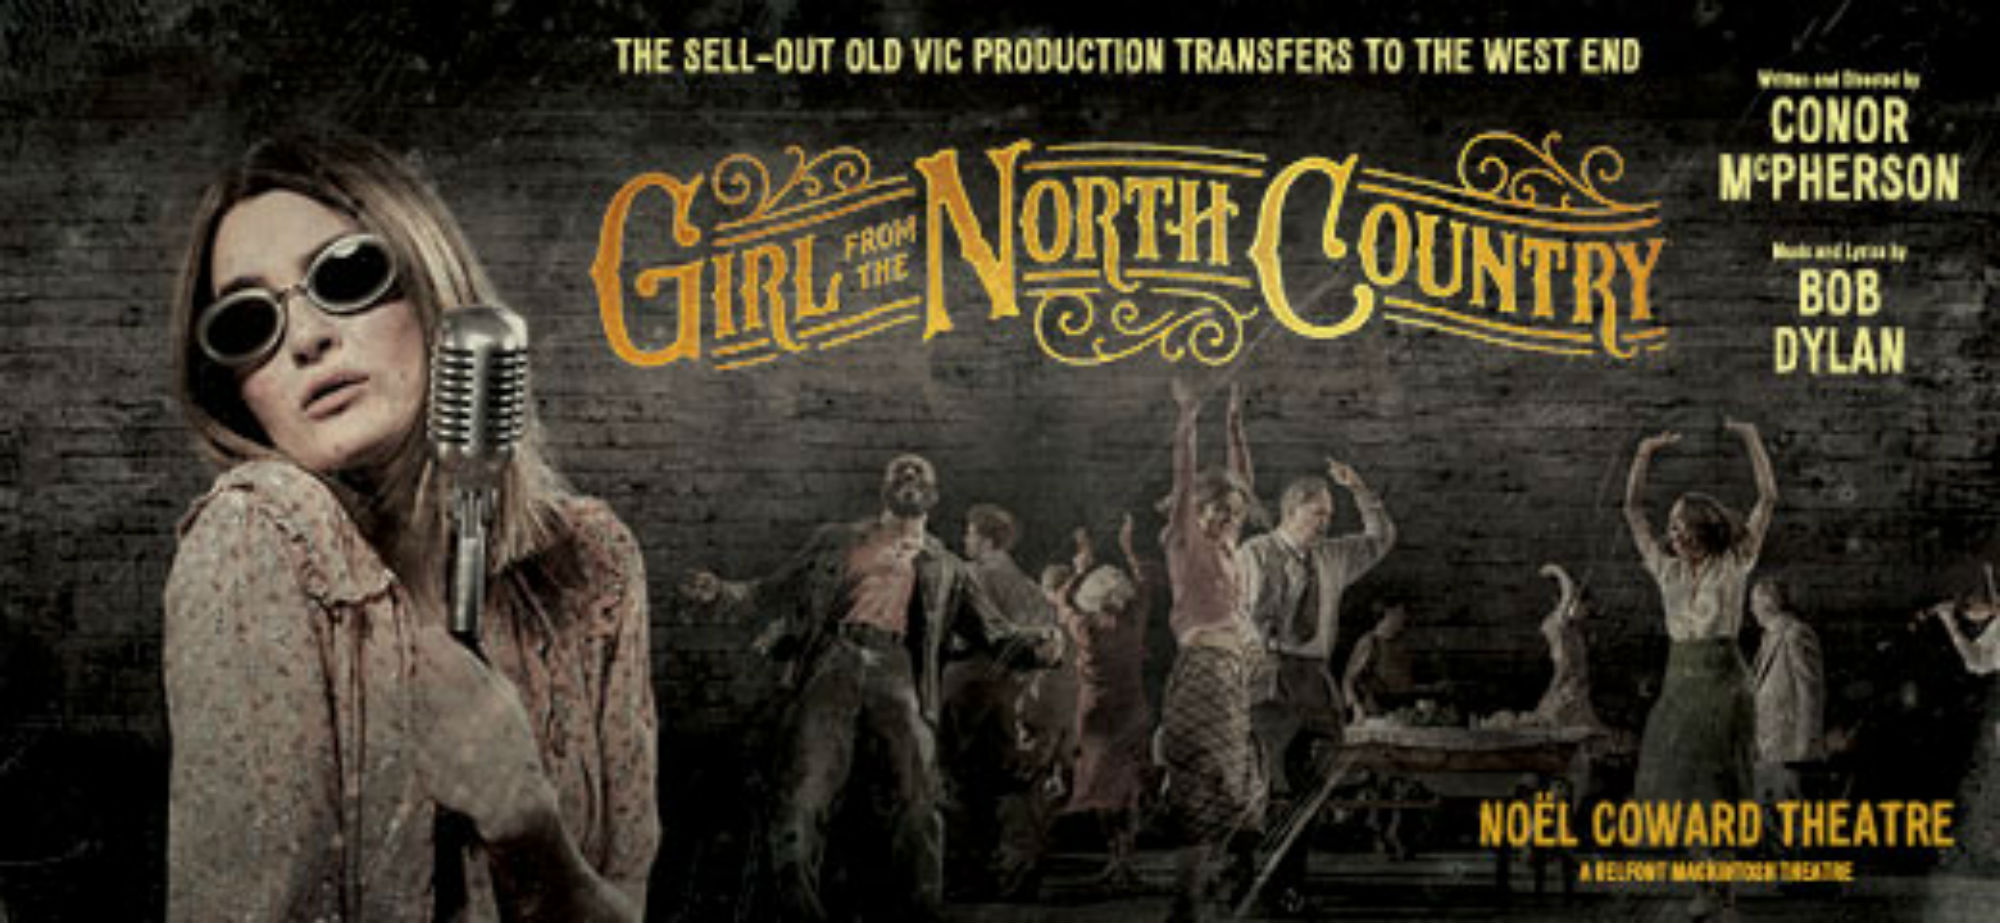 Poster for the transfer of Girl from the North Country at the Noel Coward Theatre